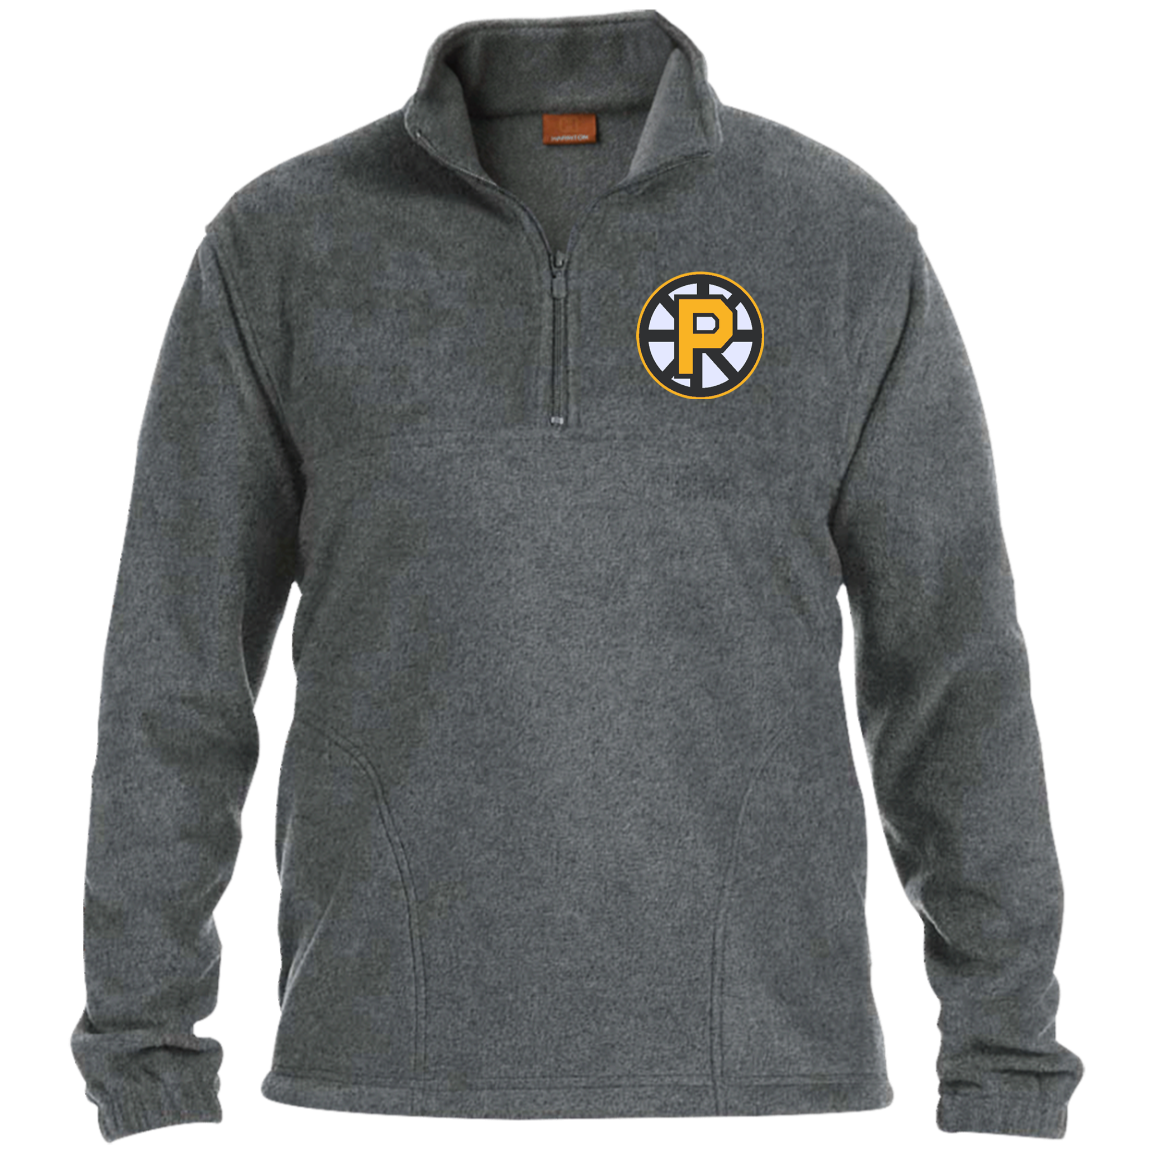 6c002c07 Providence Bruins Adult Embroidered 1/4 Zip Fleece Pullover – ahlstore.com